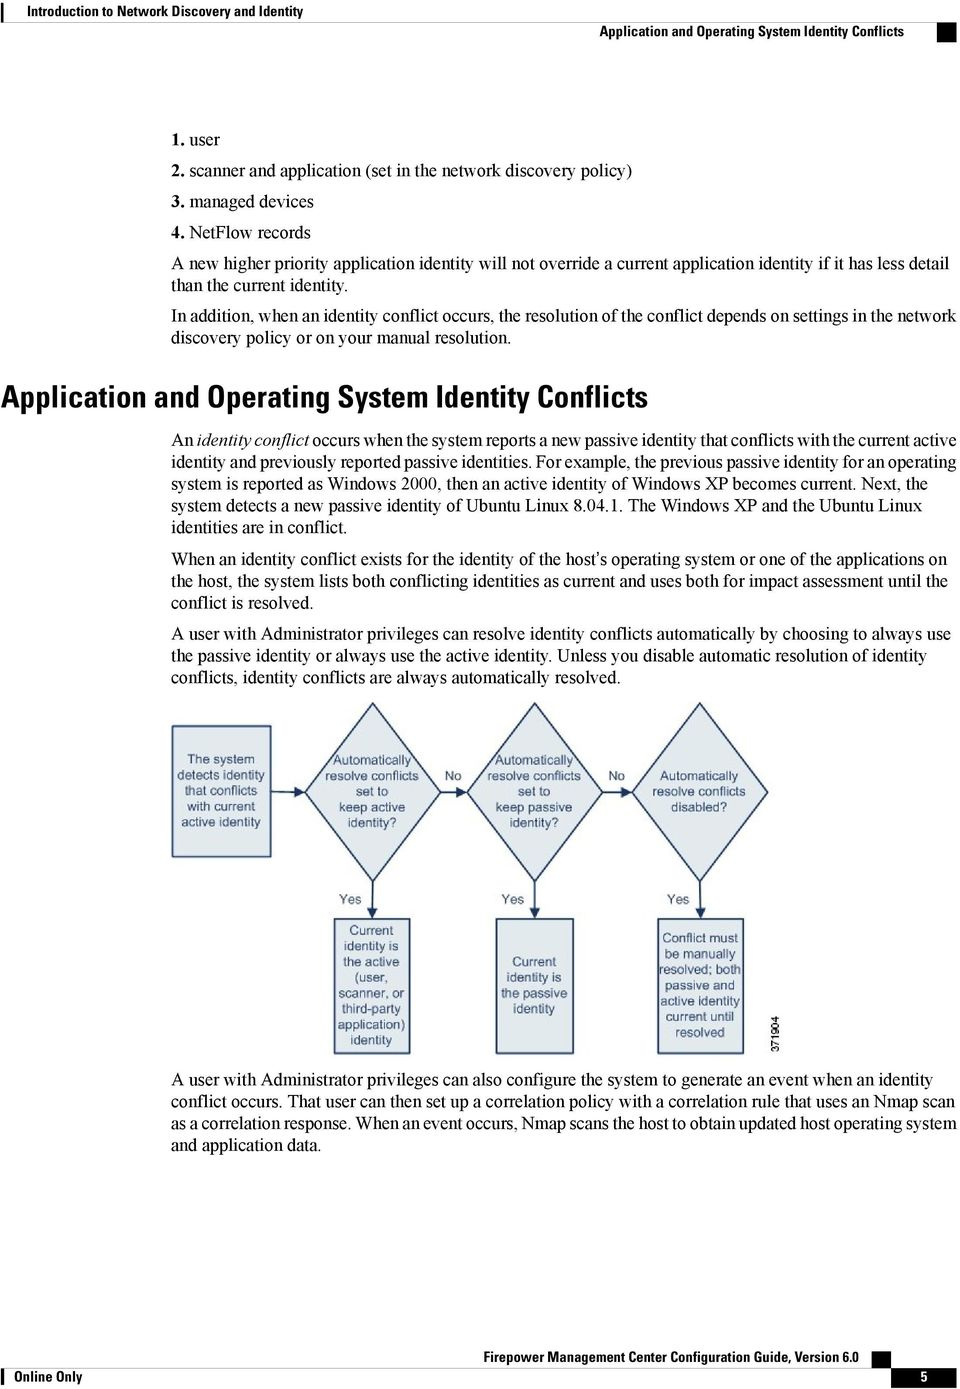 In addition, when an identity conflict occurs, the resolution of the conflict depends on settings in the network discovery policy or on your manual resolution.